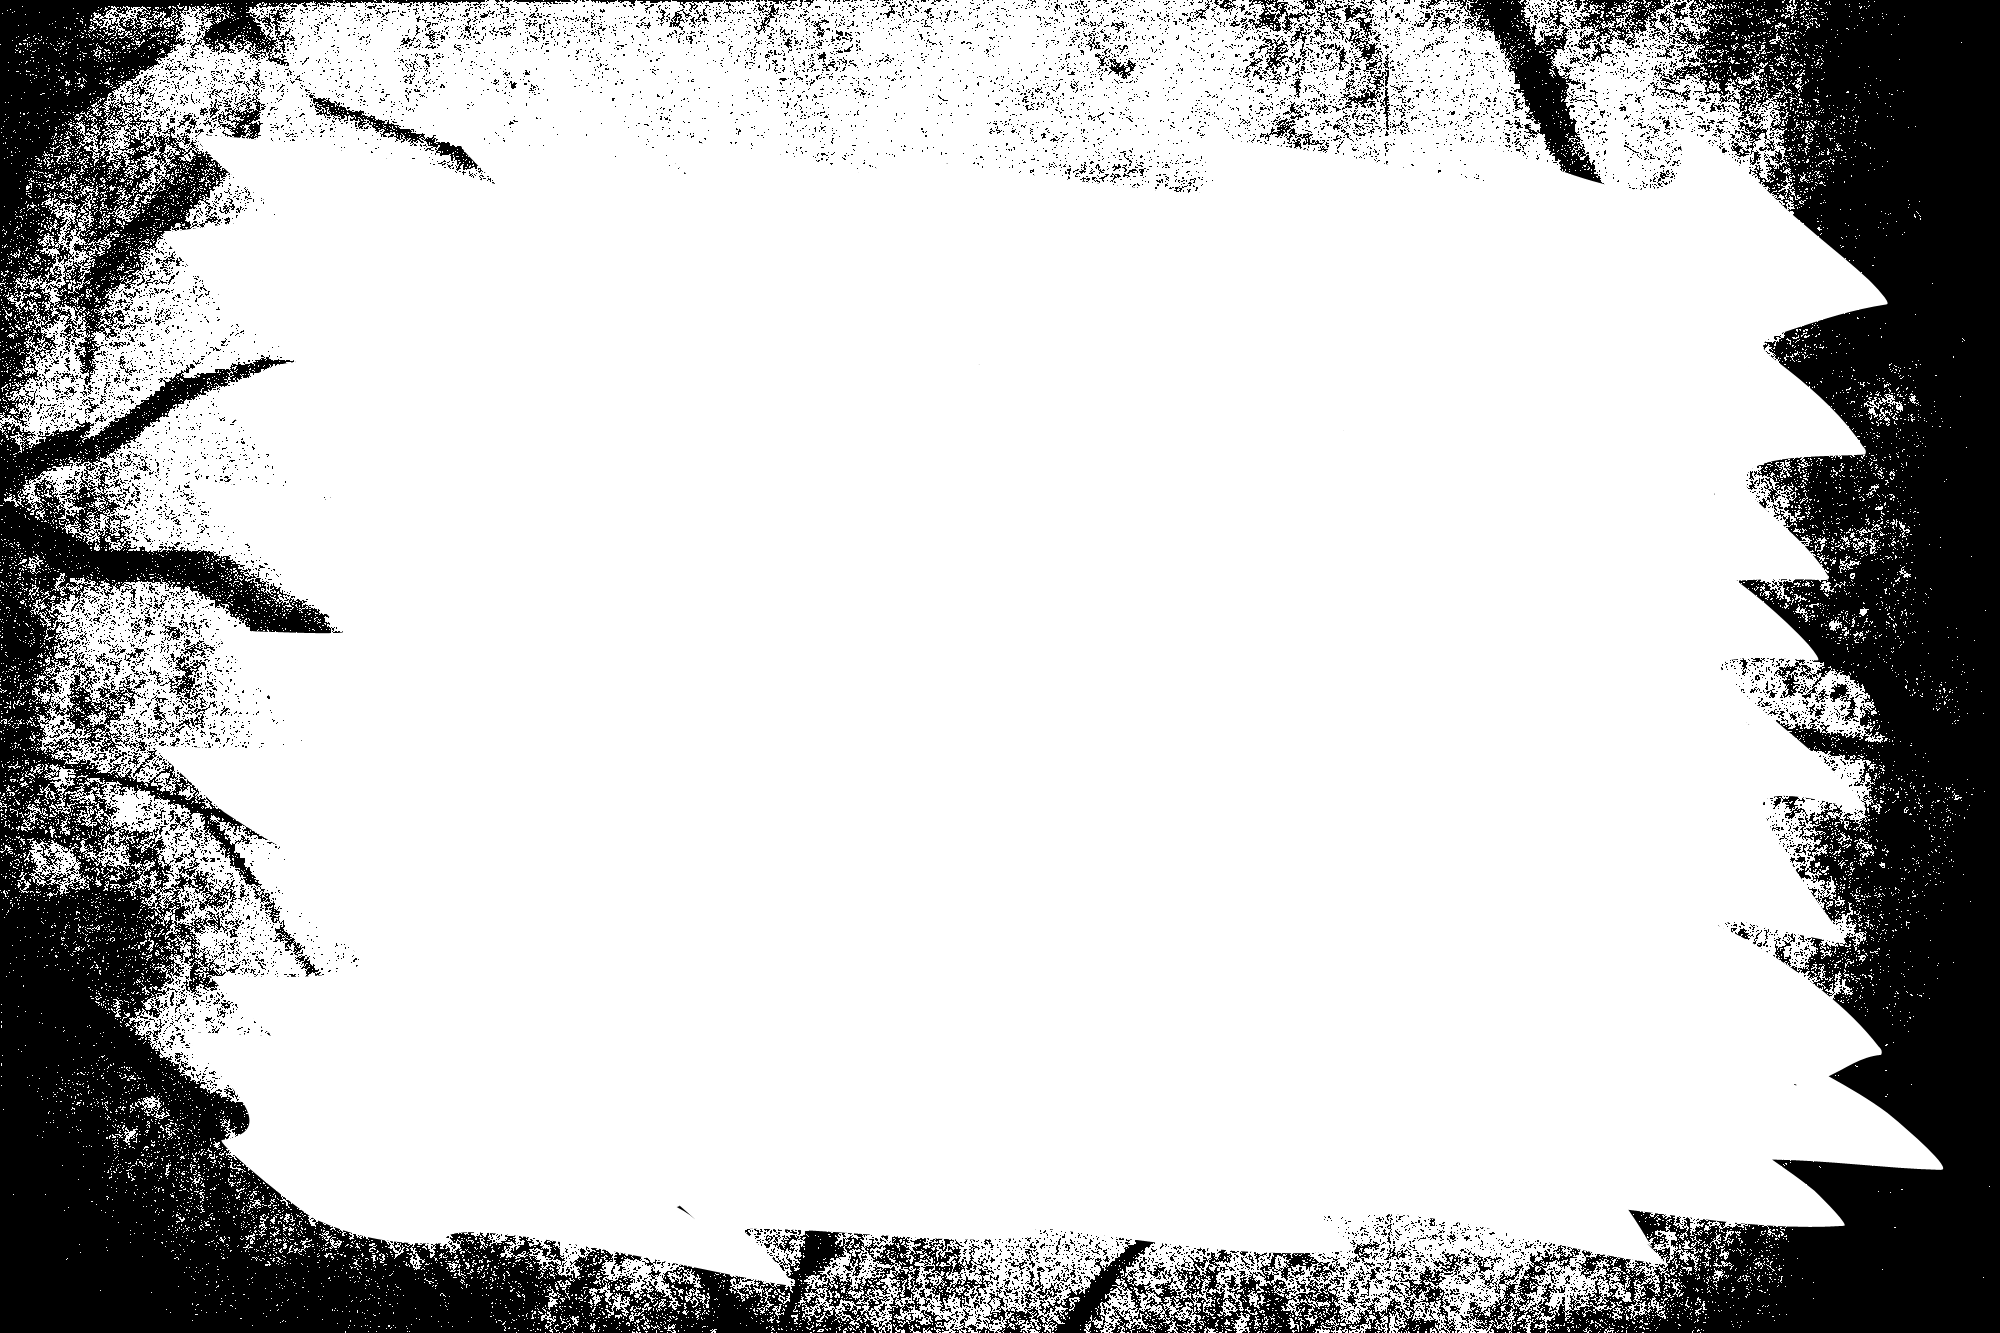 image royalty free Image frame by theartist. Transparent grunge black and white